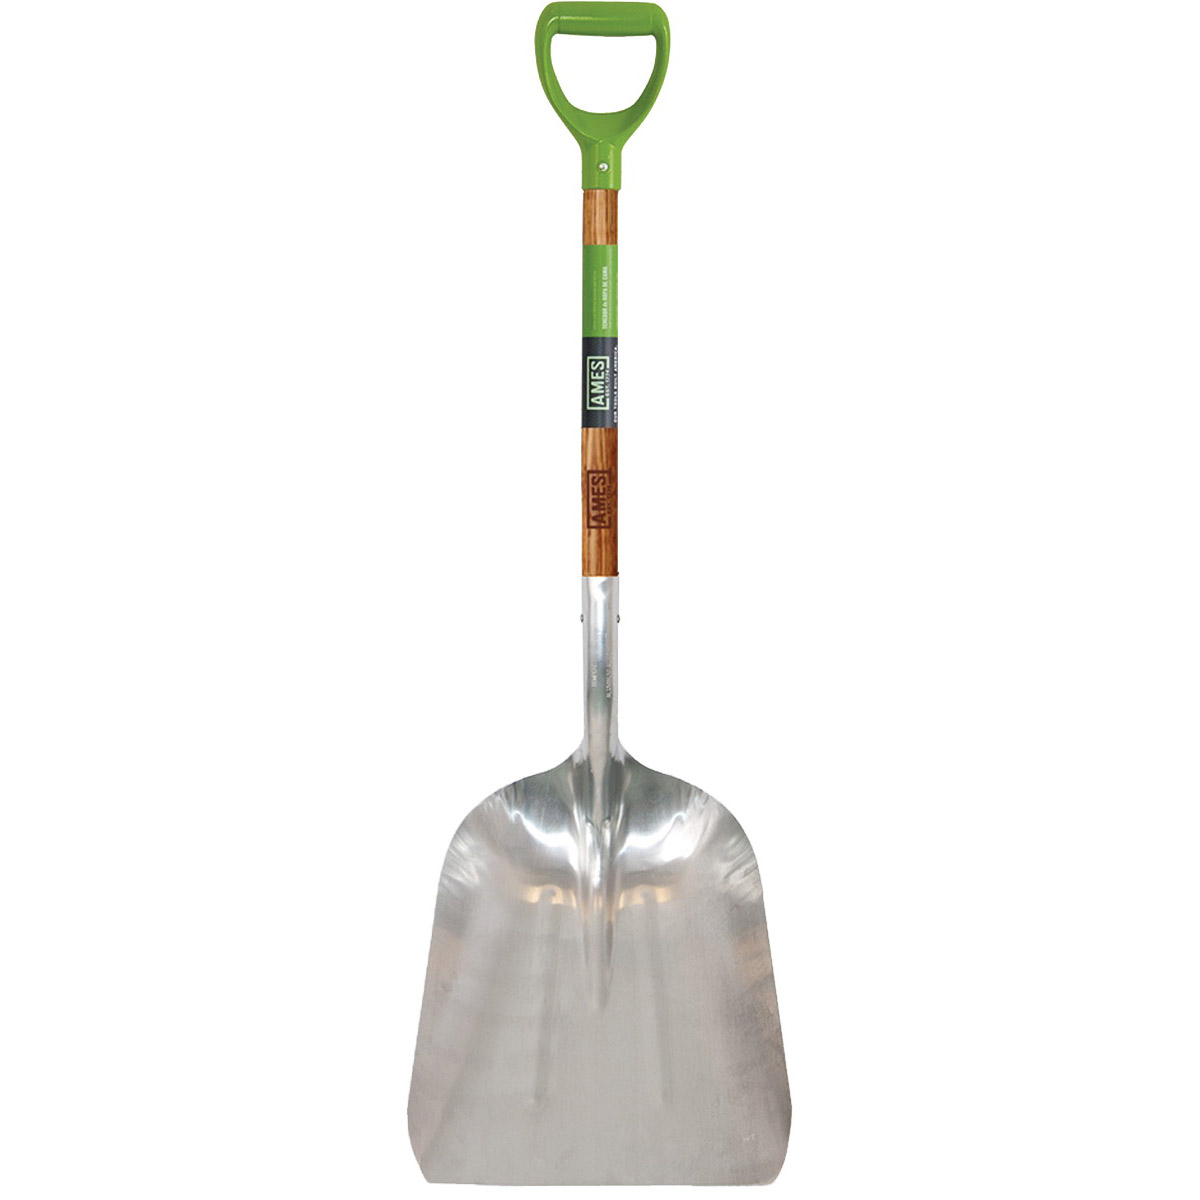 Picture of AMES 2672300 Scoop Shovel, 14-1/2 in W Blade, 10 in L Blade, Aluminum Blade, Hardwood Handle, D-Shaped Handle